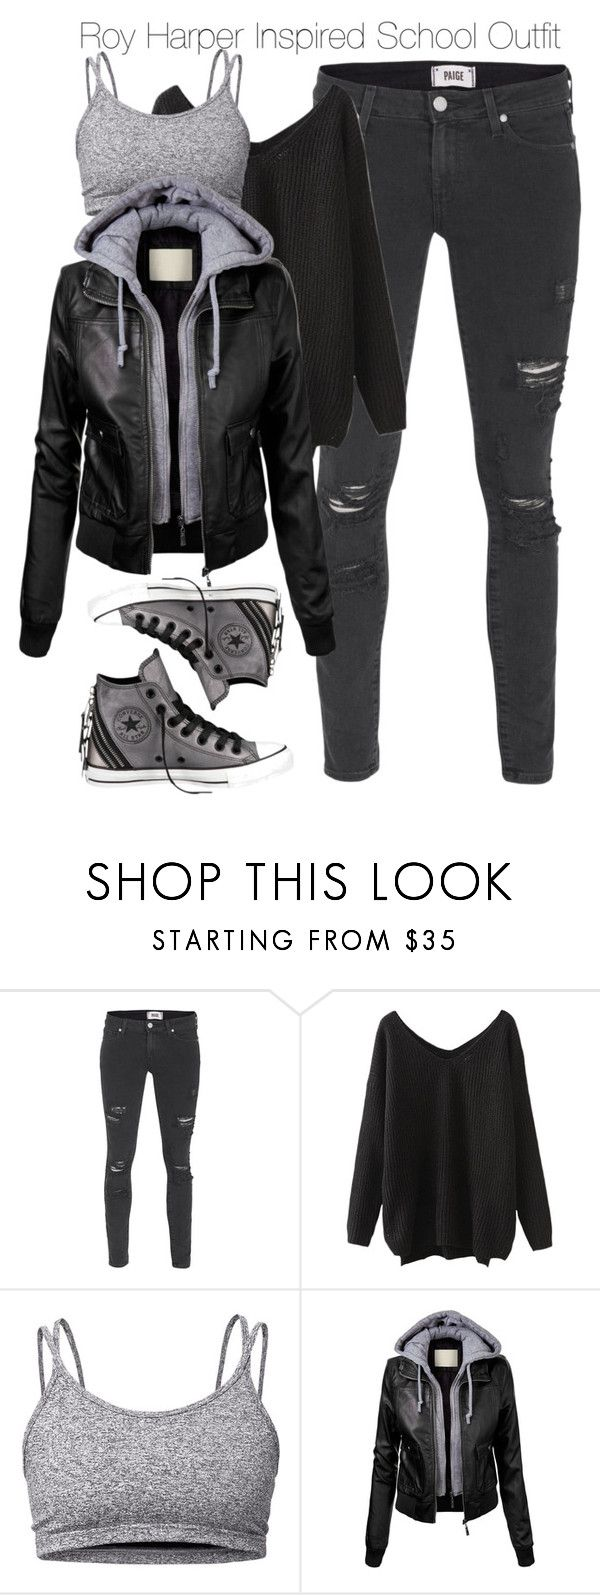 """Arrow - Roy Harper Inspired School Outfit"" by nathj ❤ liked on Polyvore featuring Paige Denim, Lija, Converse, school, Arrow and royharper"